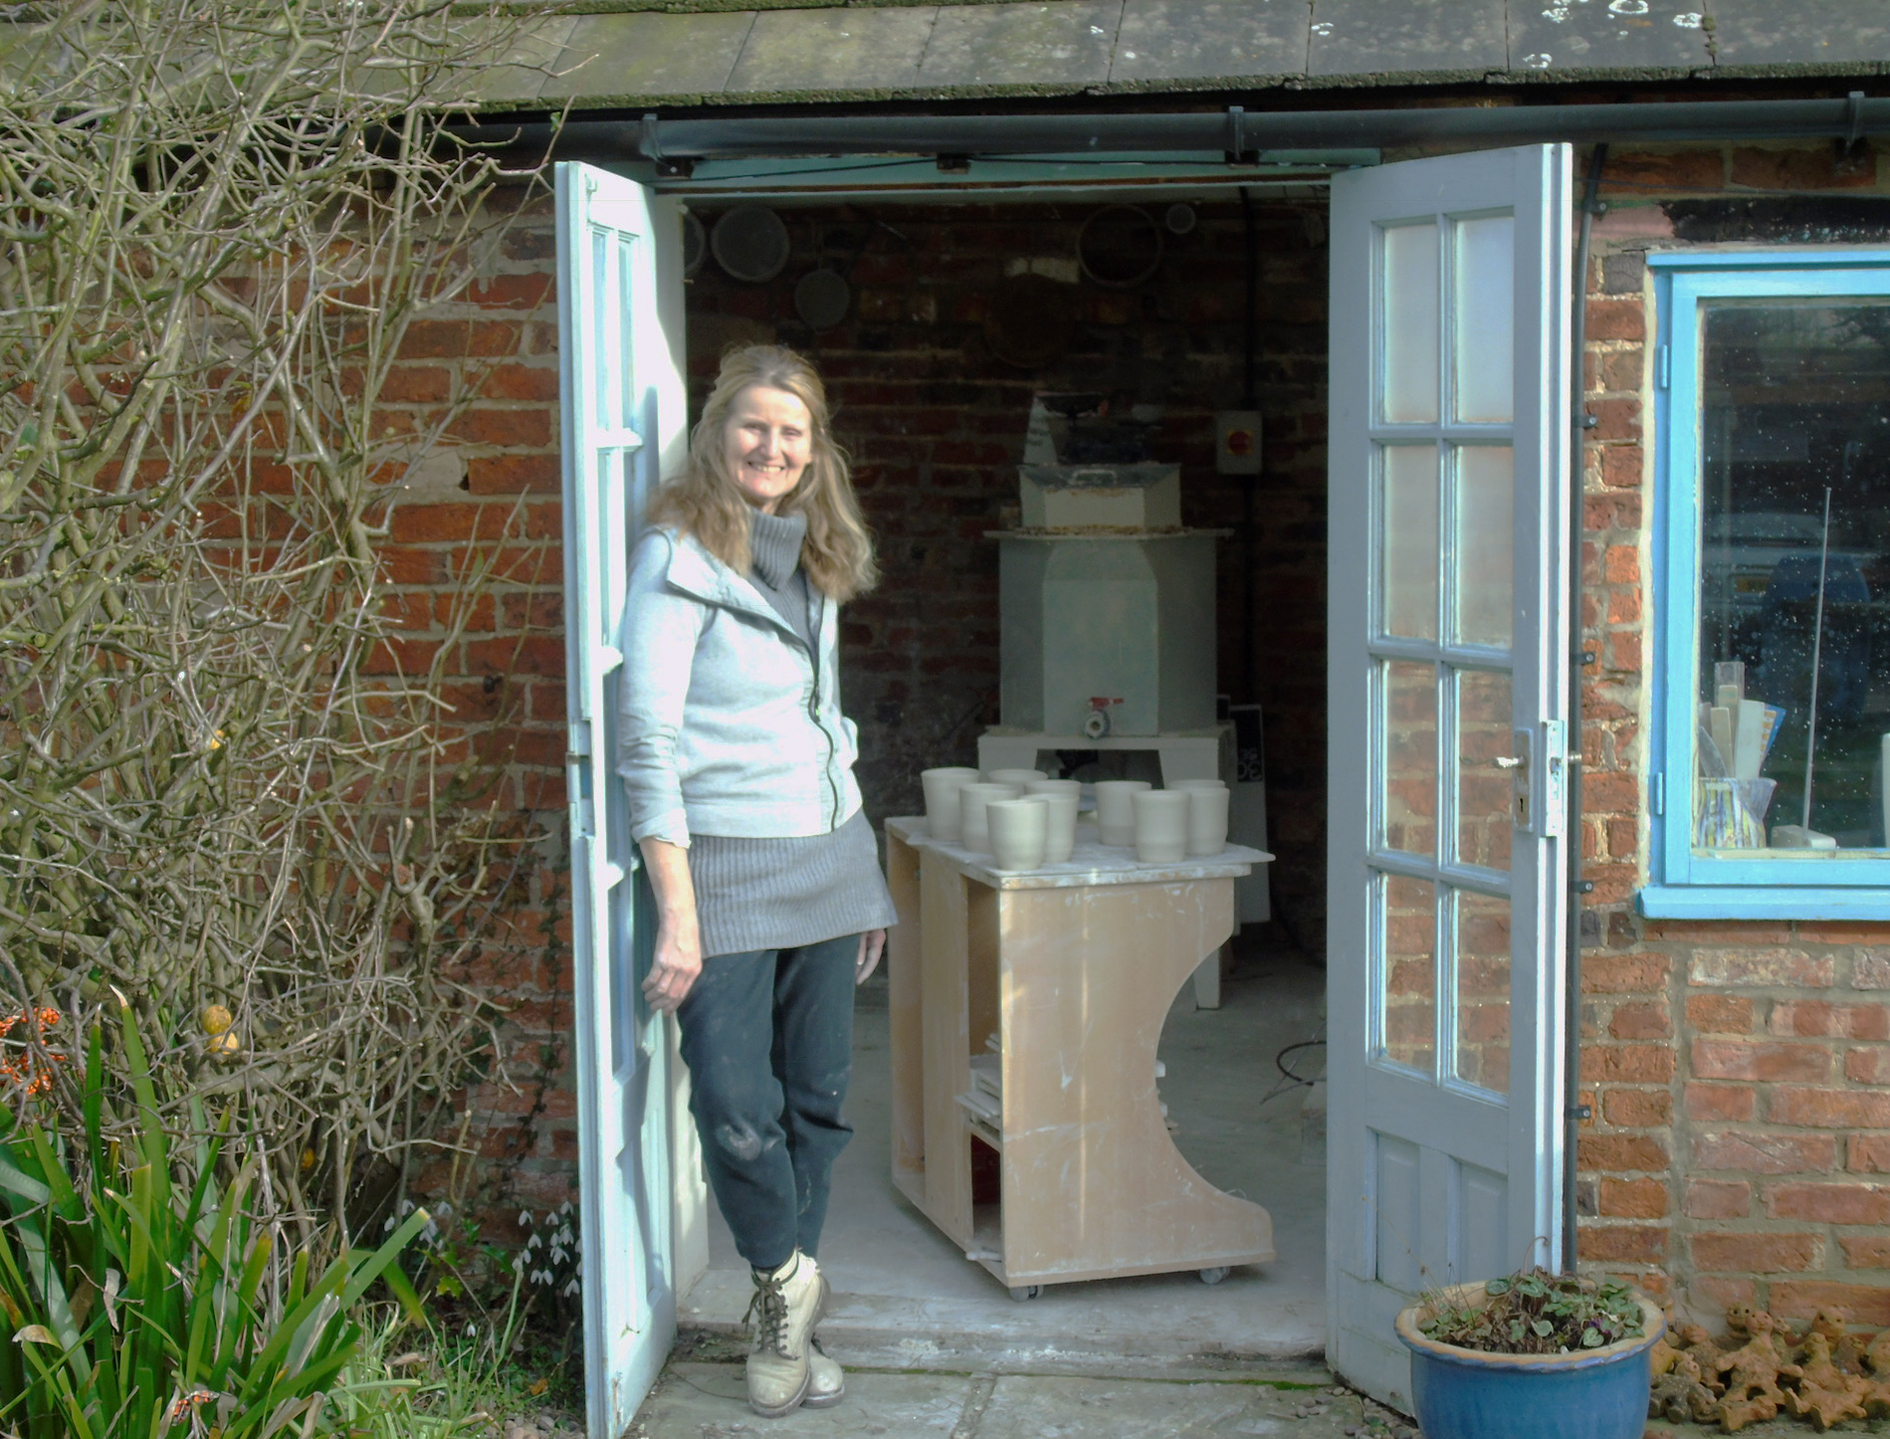 Ceramicist Jill Ford, who will be taking part in the Pocklington Area Open Studios